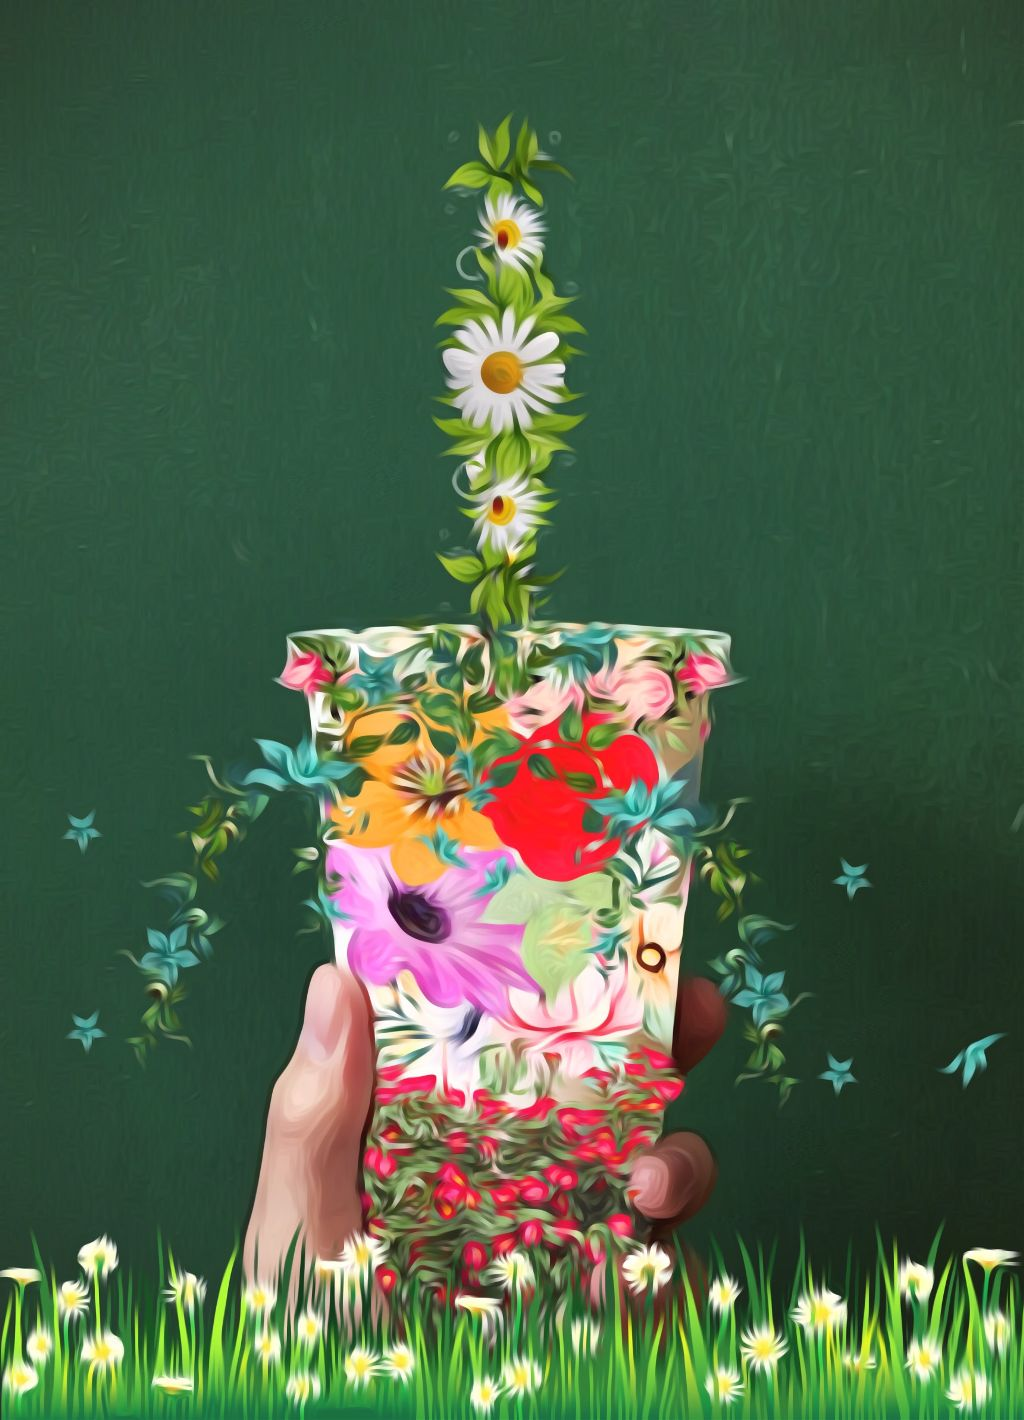 #freetoedit #oilpainting #effects #flowers #floral #summer #remixed #myremix #dailyremix #smooth #cup #straw #picsart #stickers #editedbyme #remixit